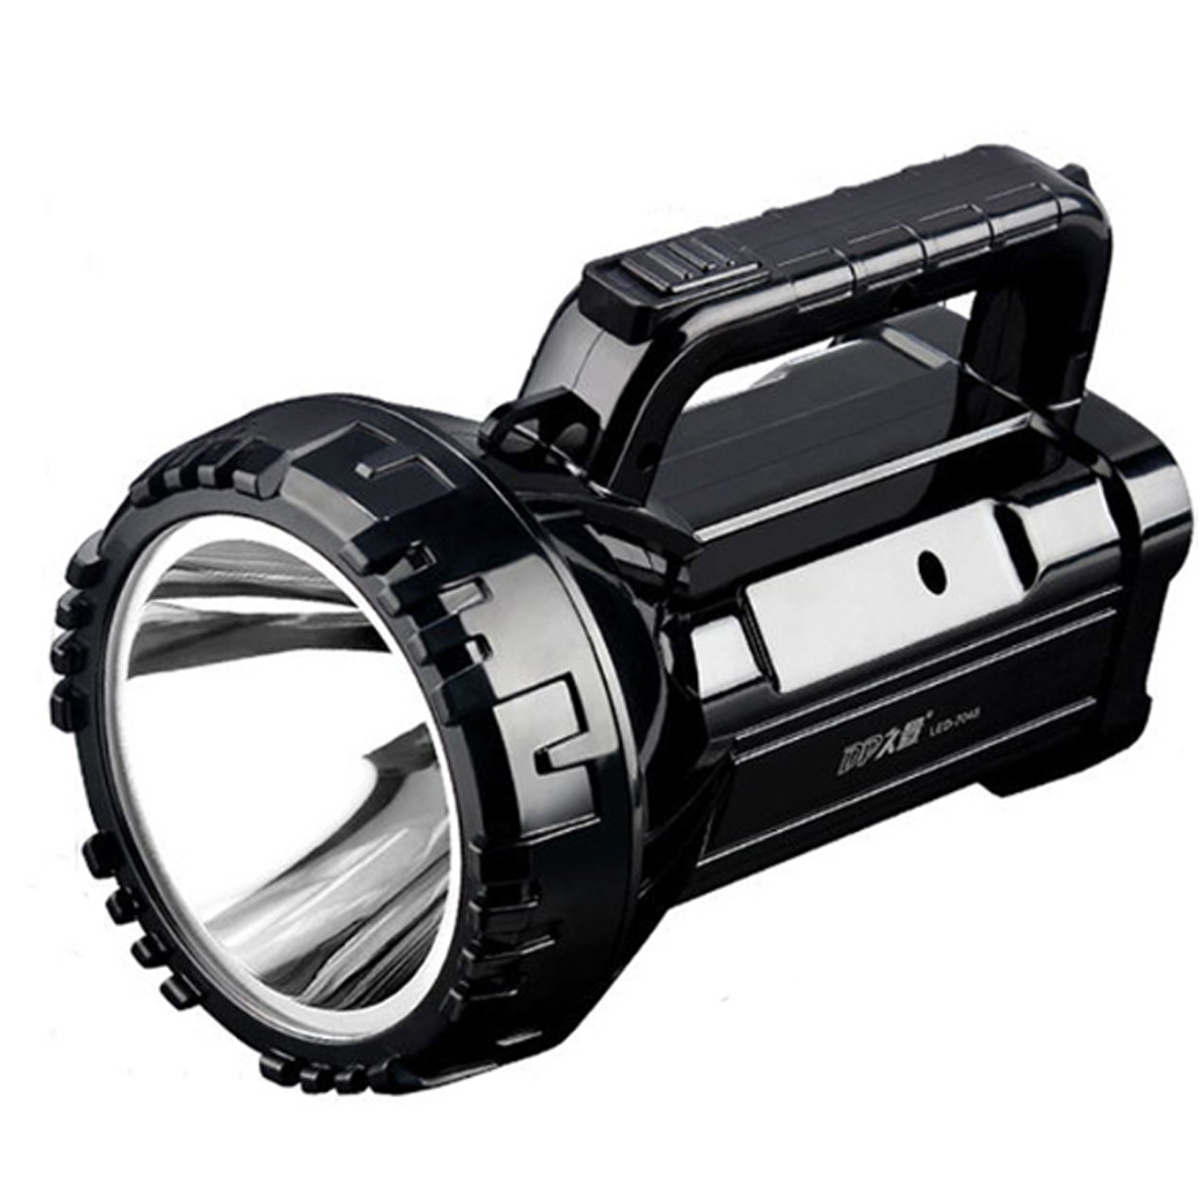 1200LM Camping Light Rechageable LED Flashlight 2 Modes Travel Emergency Lamp